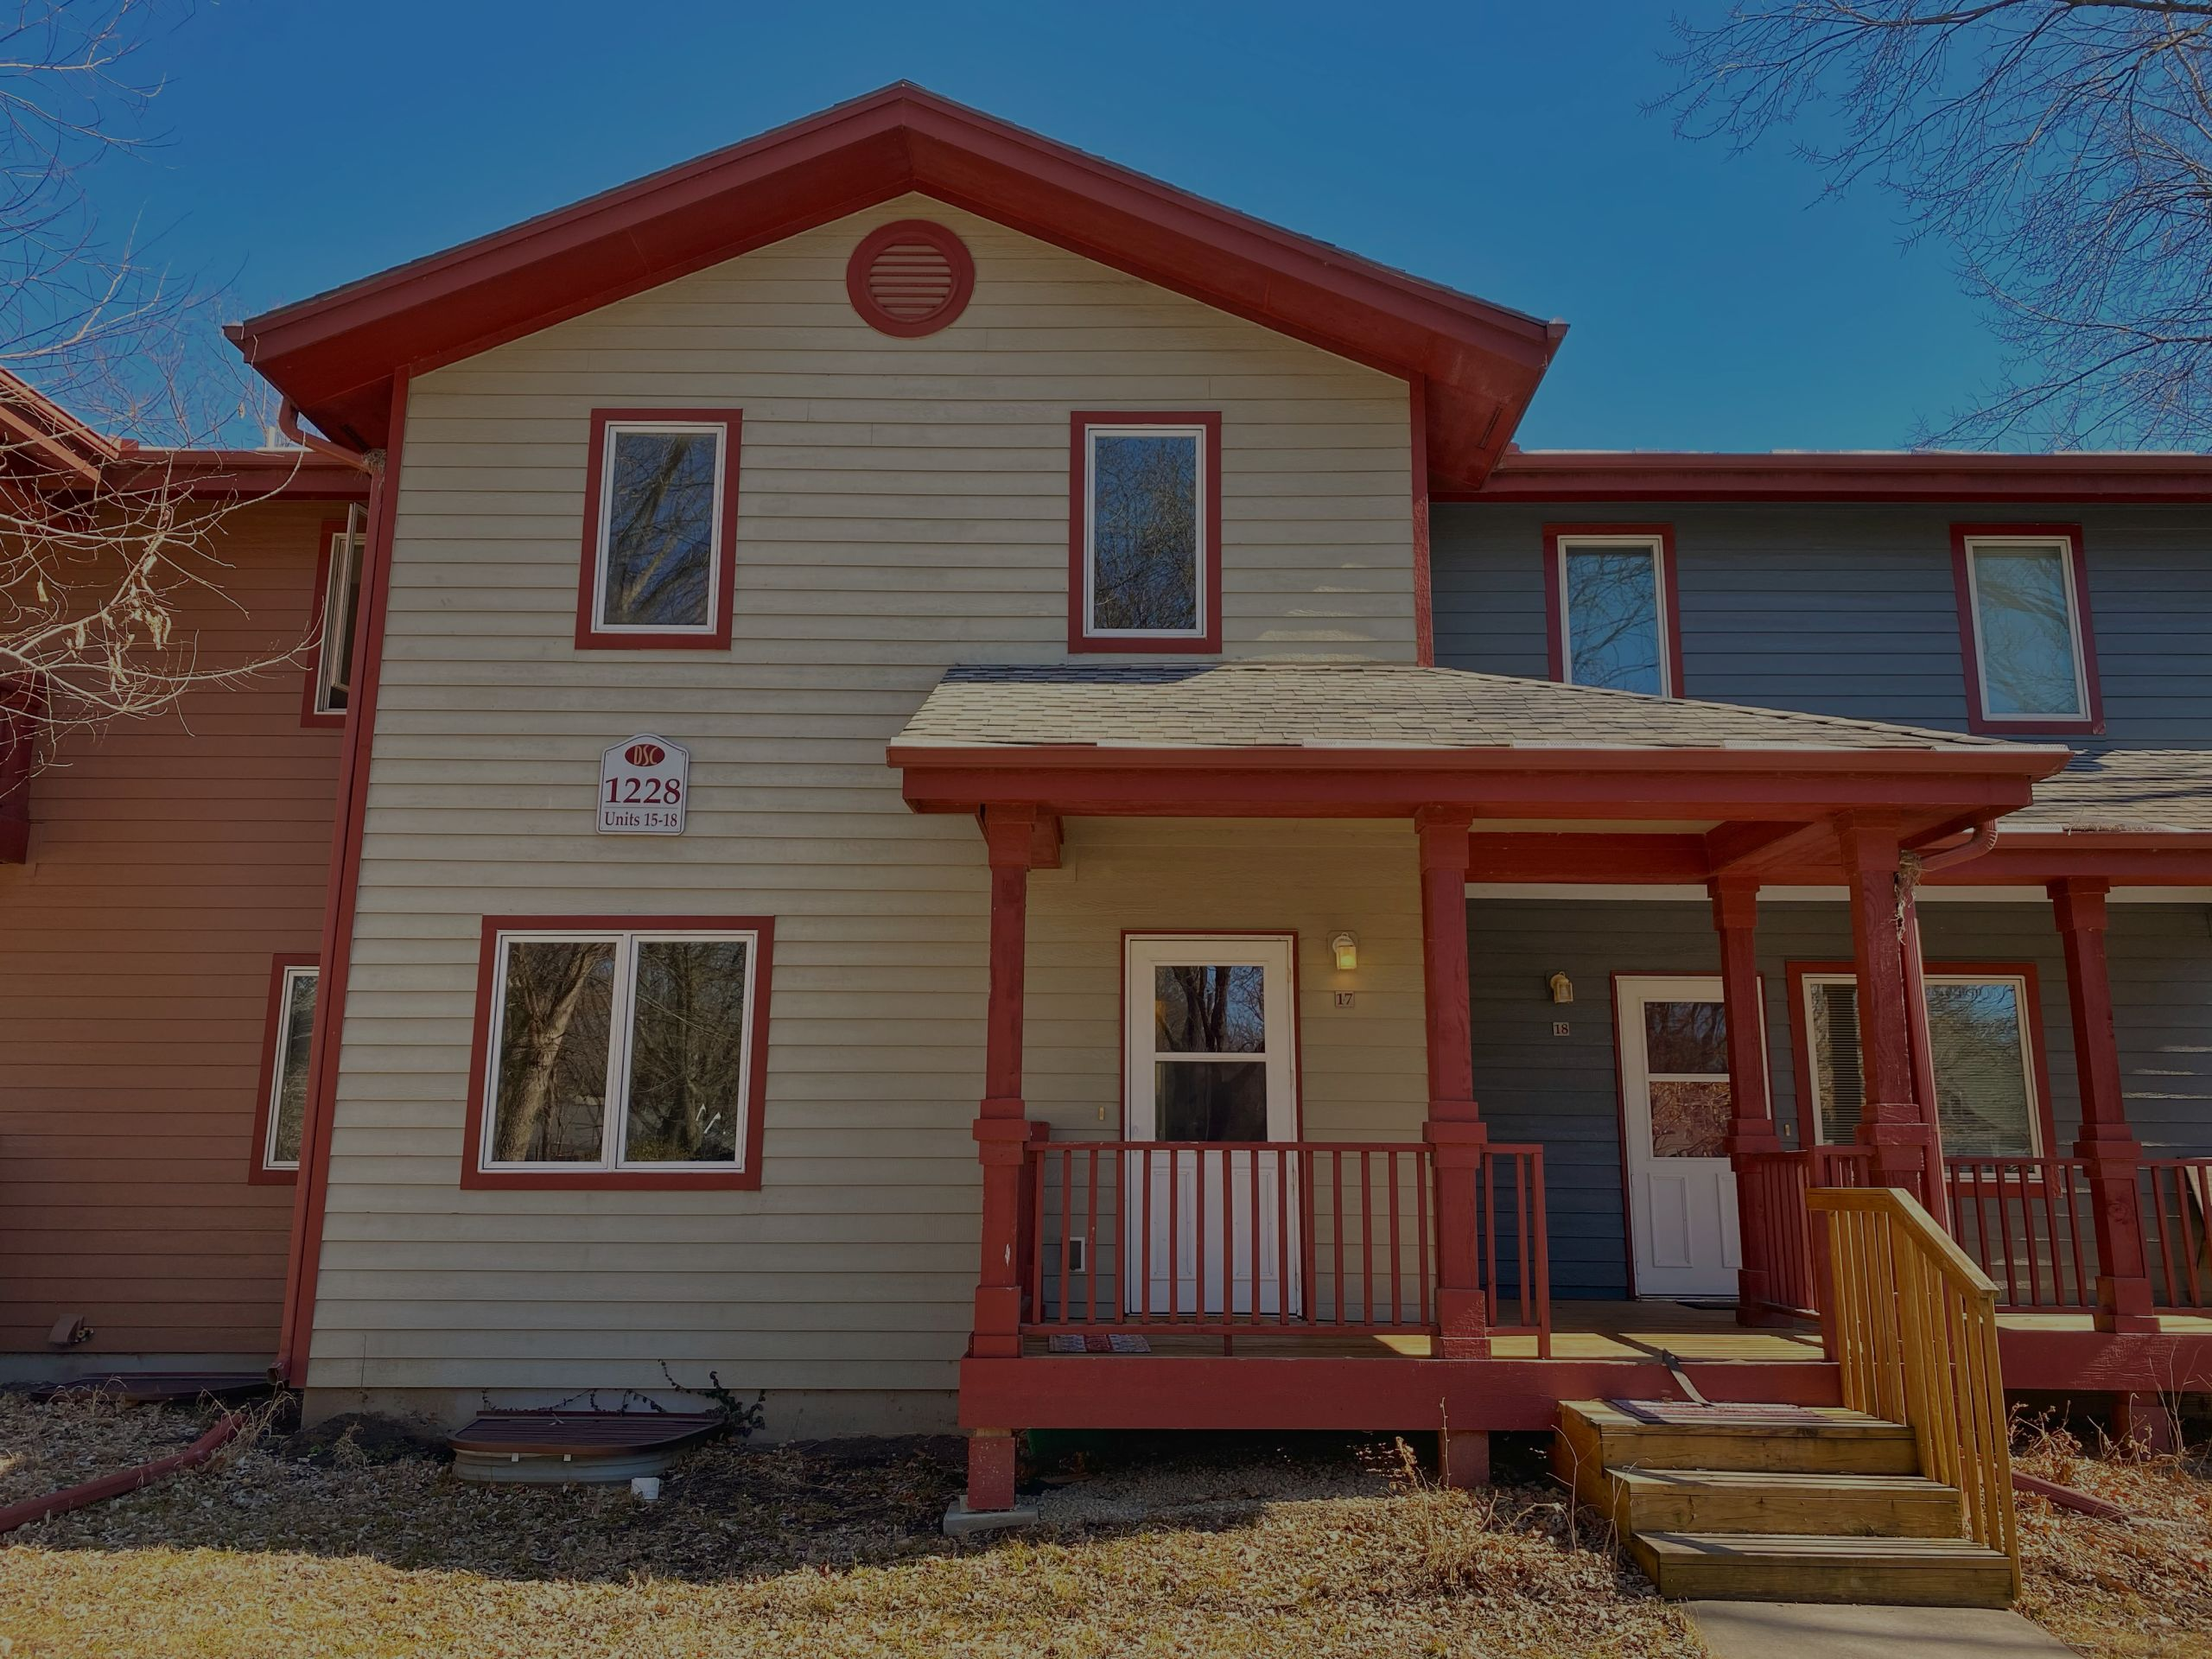 Open House at 1228 Delaware Commons #17 Sunday 3/14 12:00 to 1:30